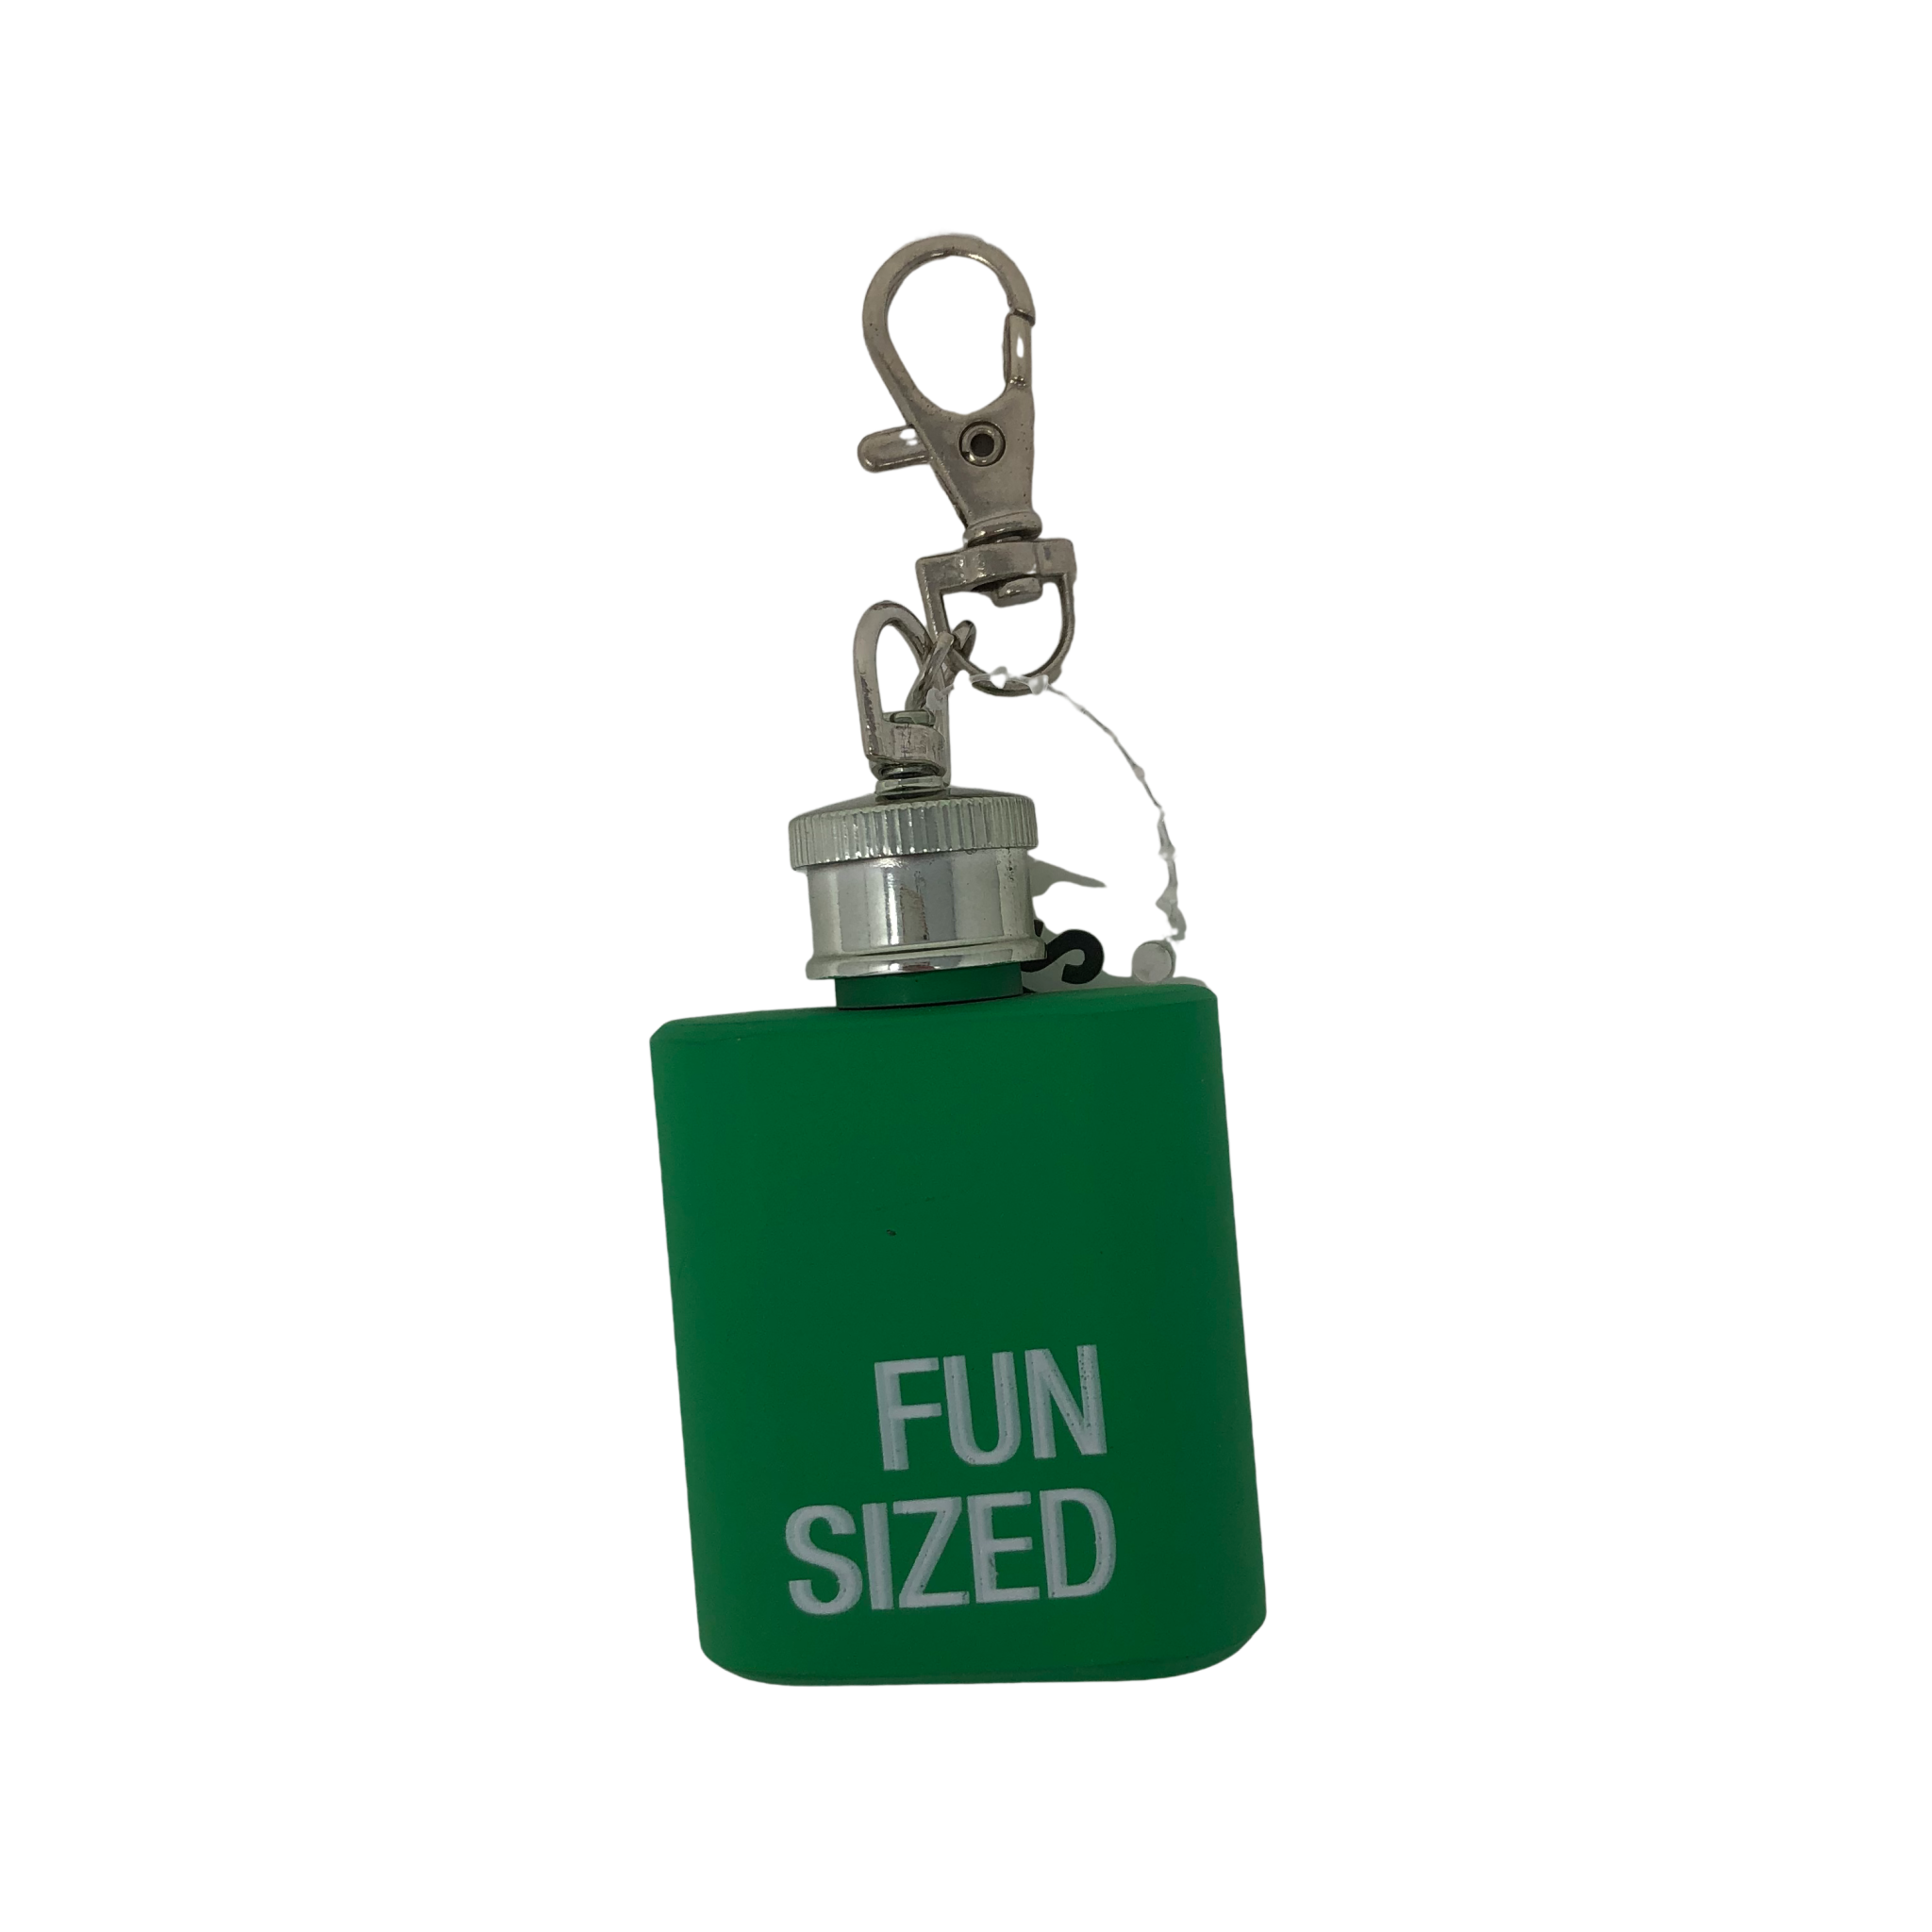 About Face Designs Fun Sized Key Ring Flask